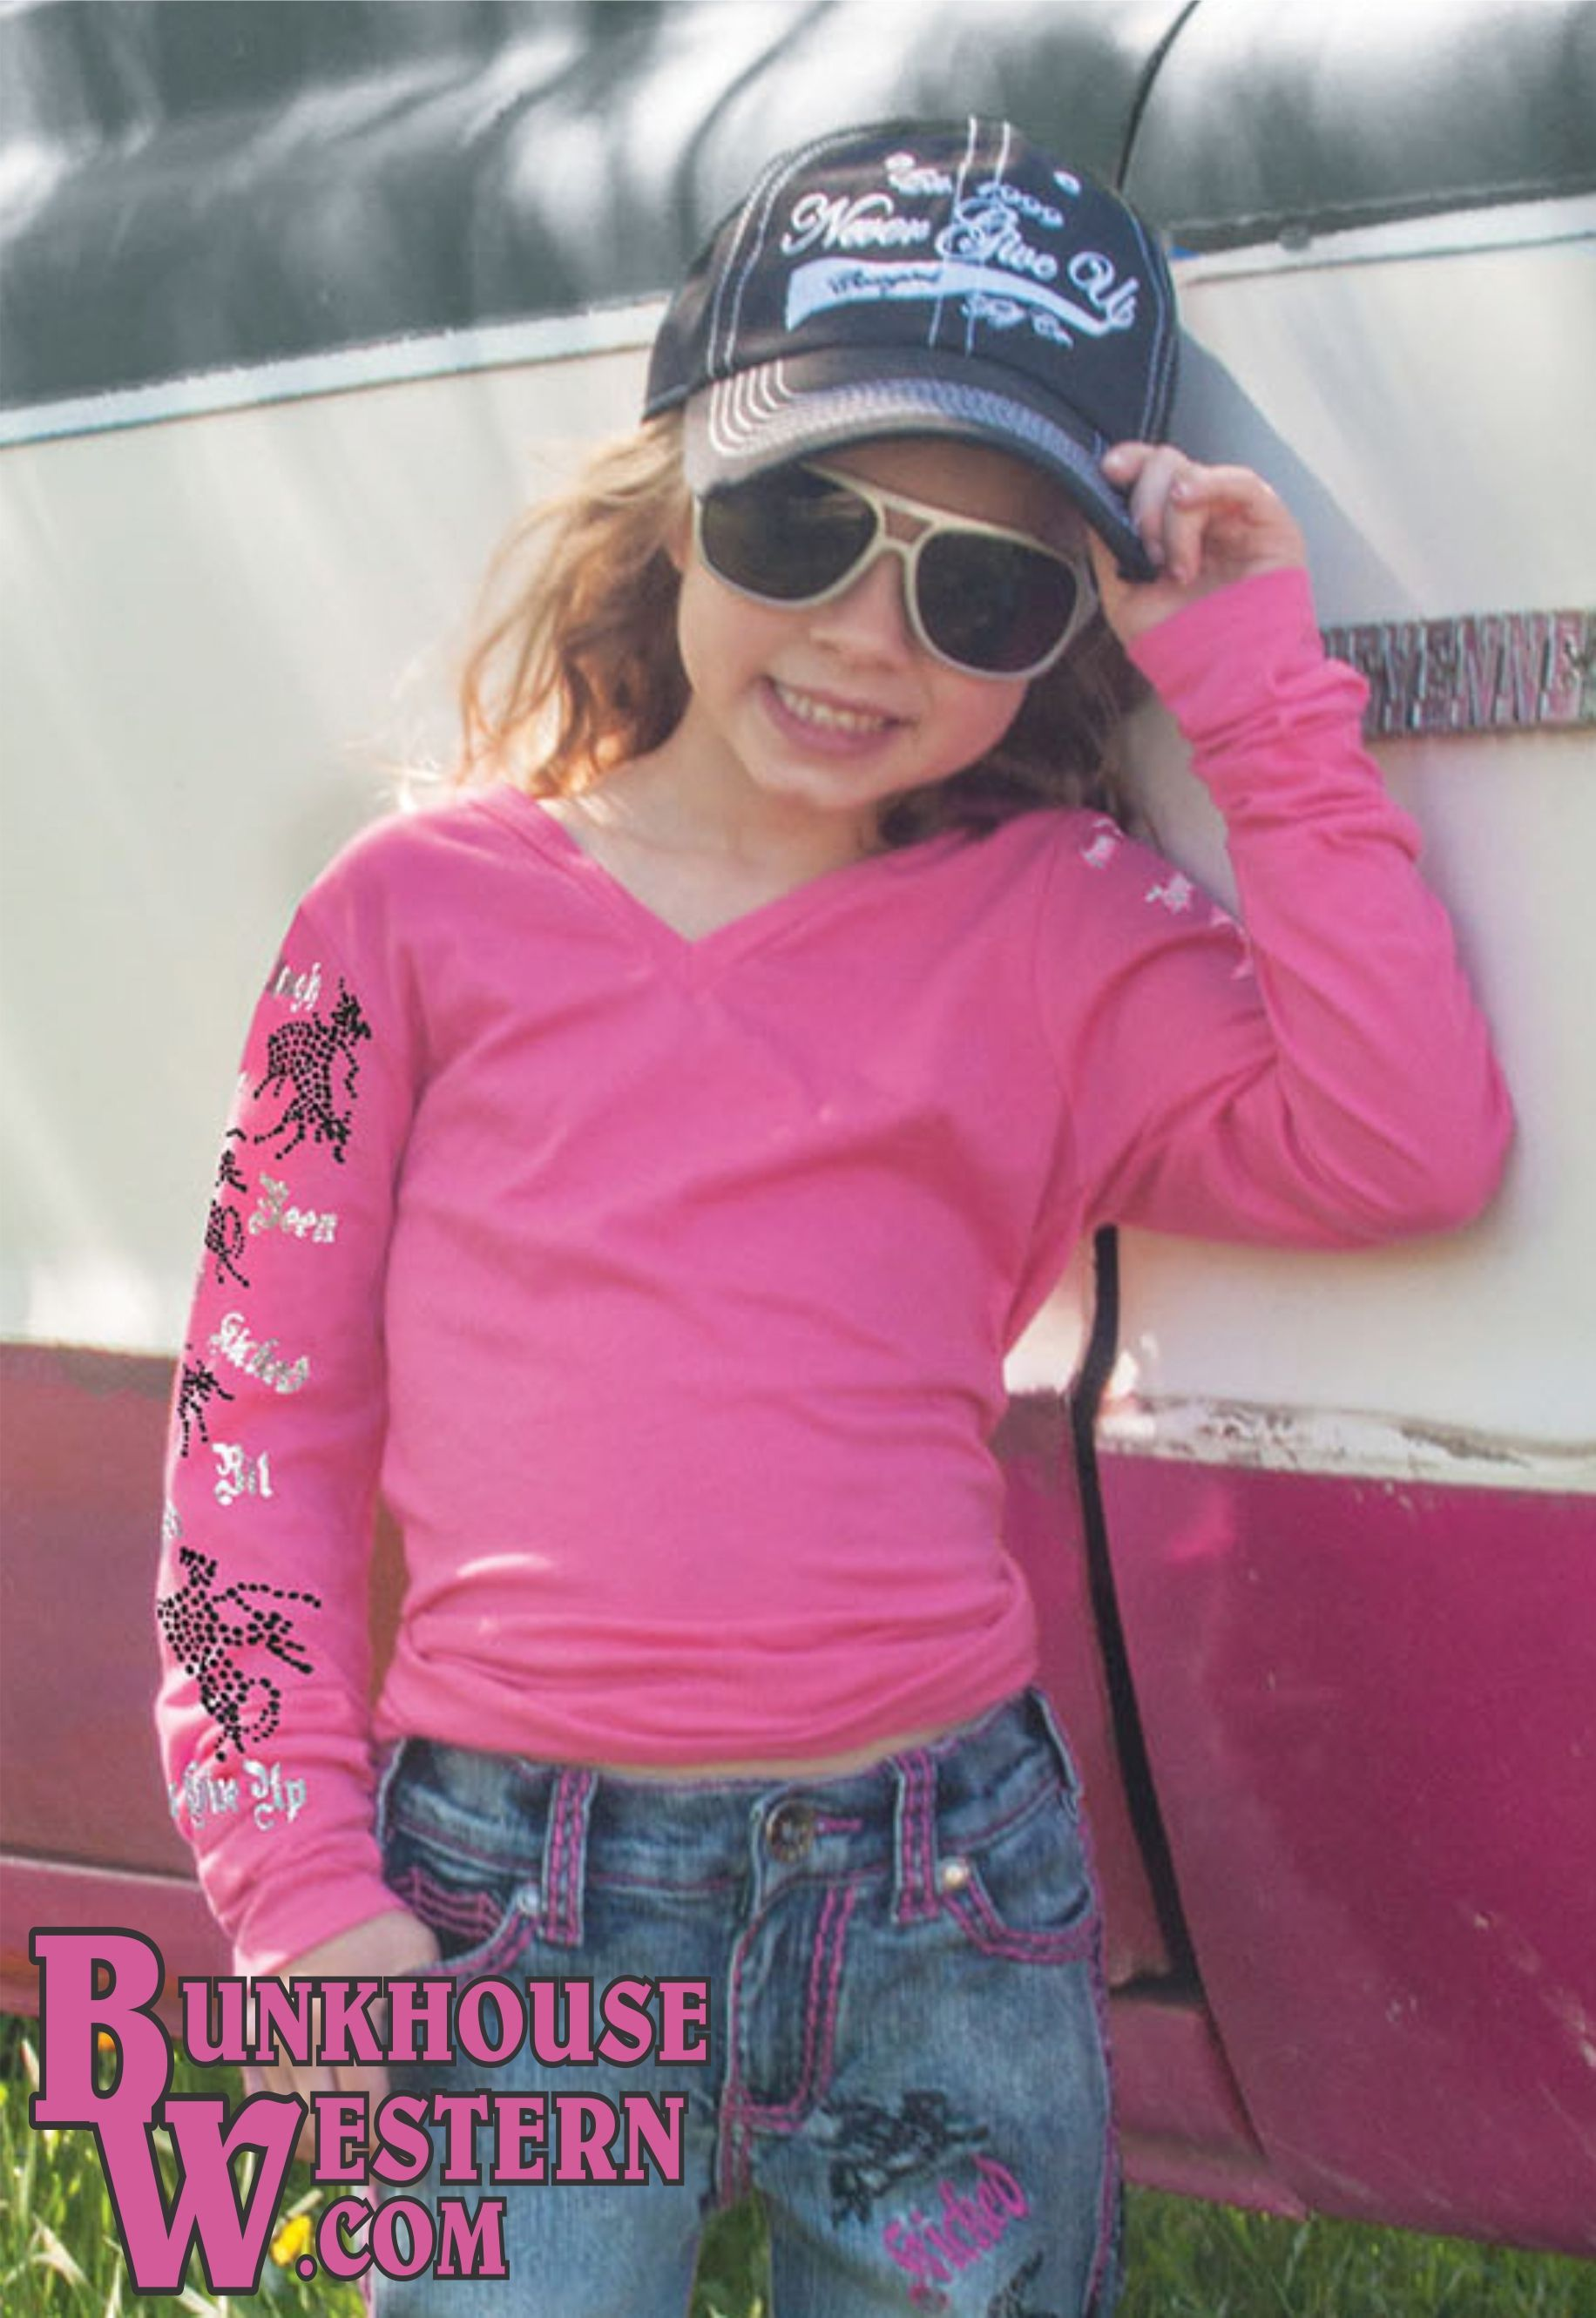 Cowgirl Tuff Company Little Girls' Pink Buckin Horse Tee, Goes great with Unbelievably Pink Jeans, Bronc Riders, Youth Western Clothing, Kids Rodeo Wear, $29.99, http://www.bunkhousewestern.com/445_p/000445.htm